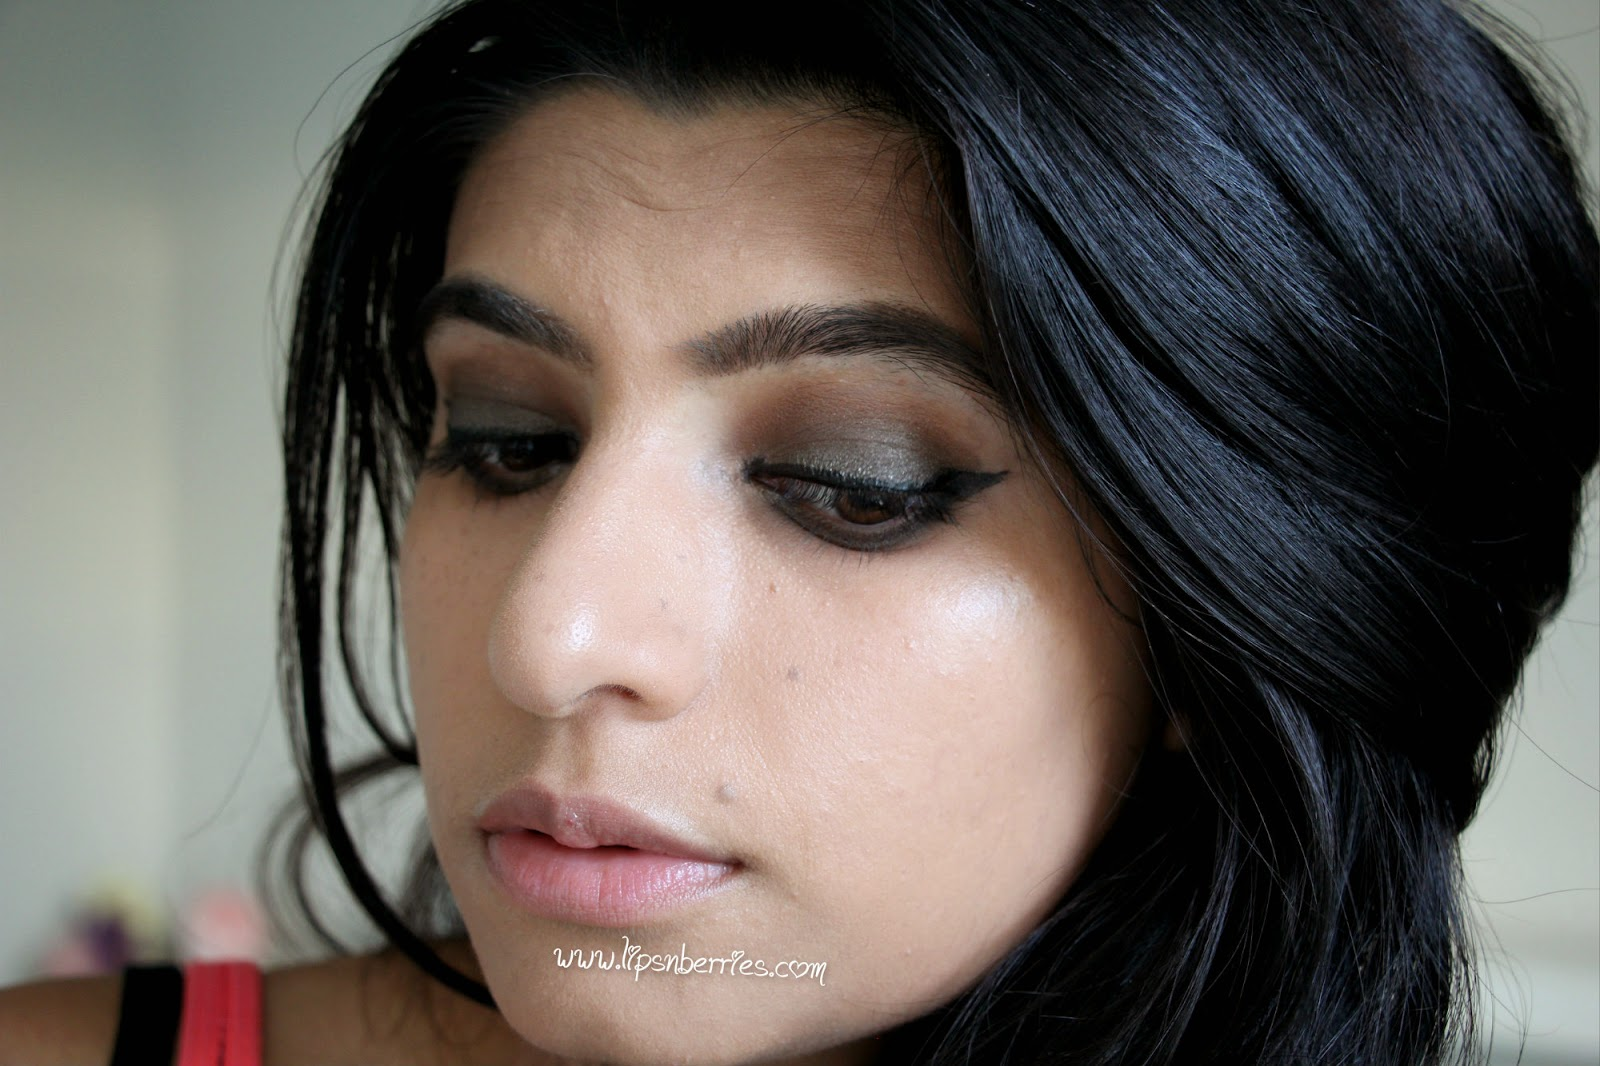 Essence stay all day foundation for oily skin